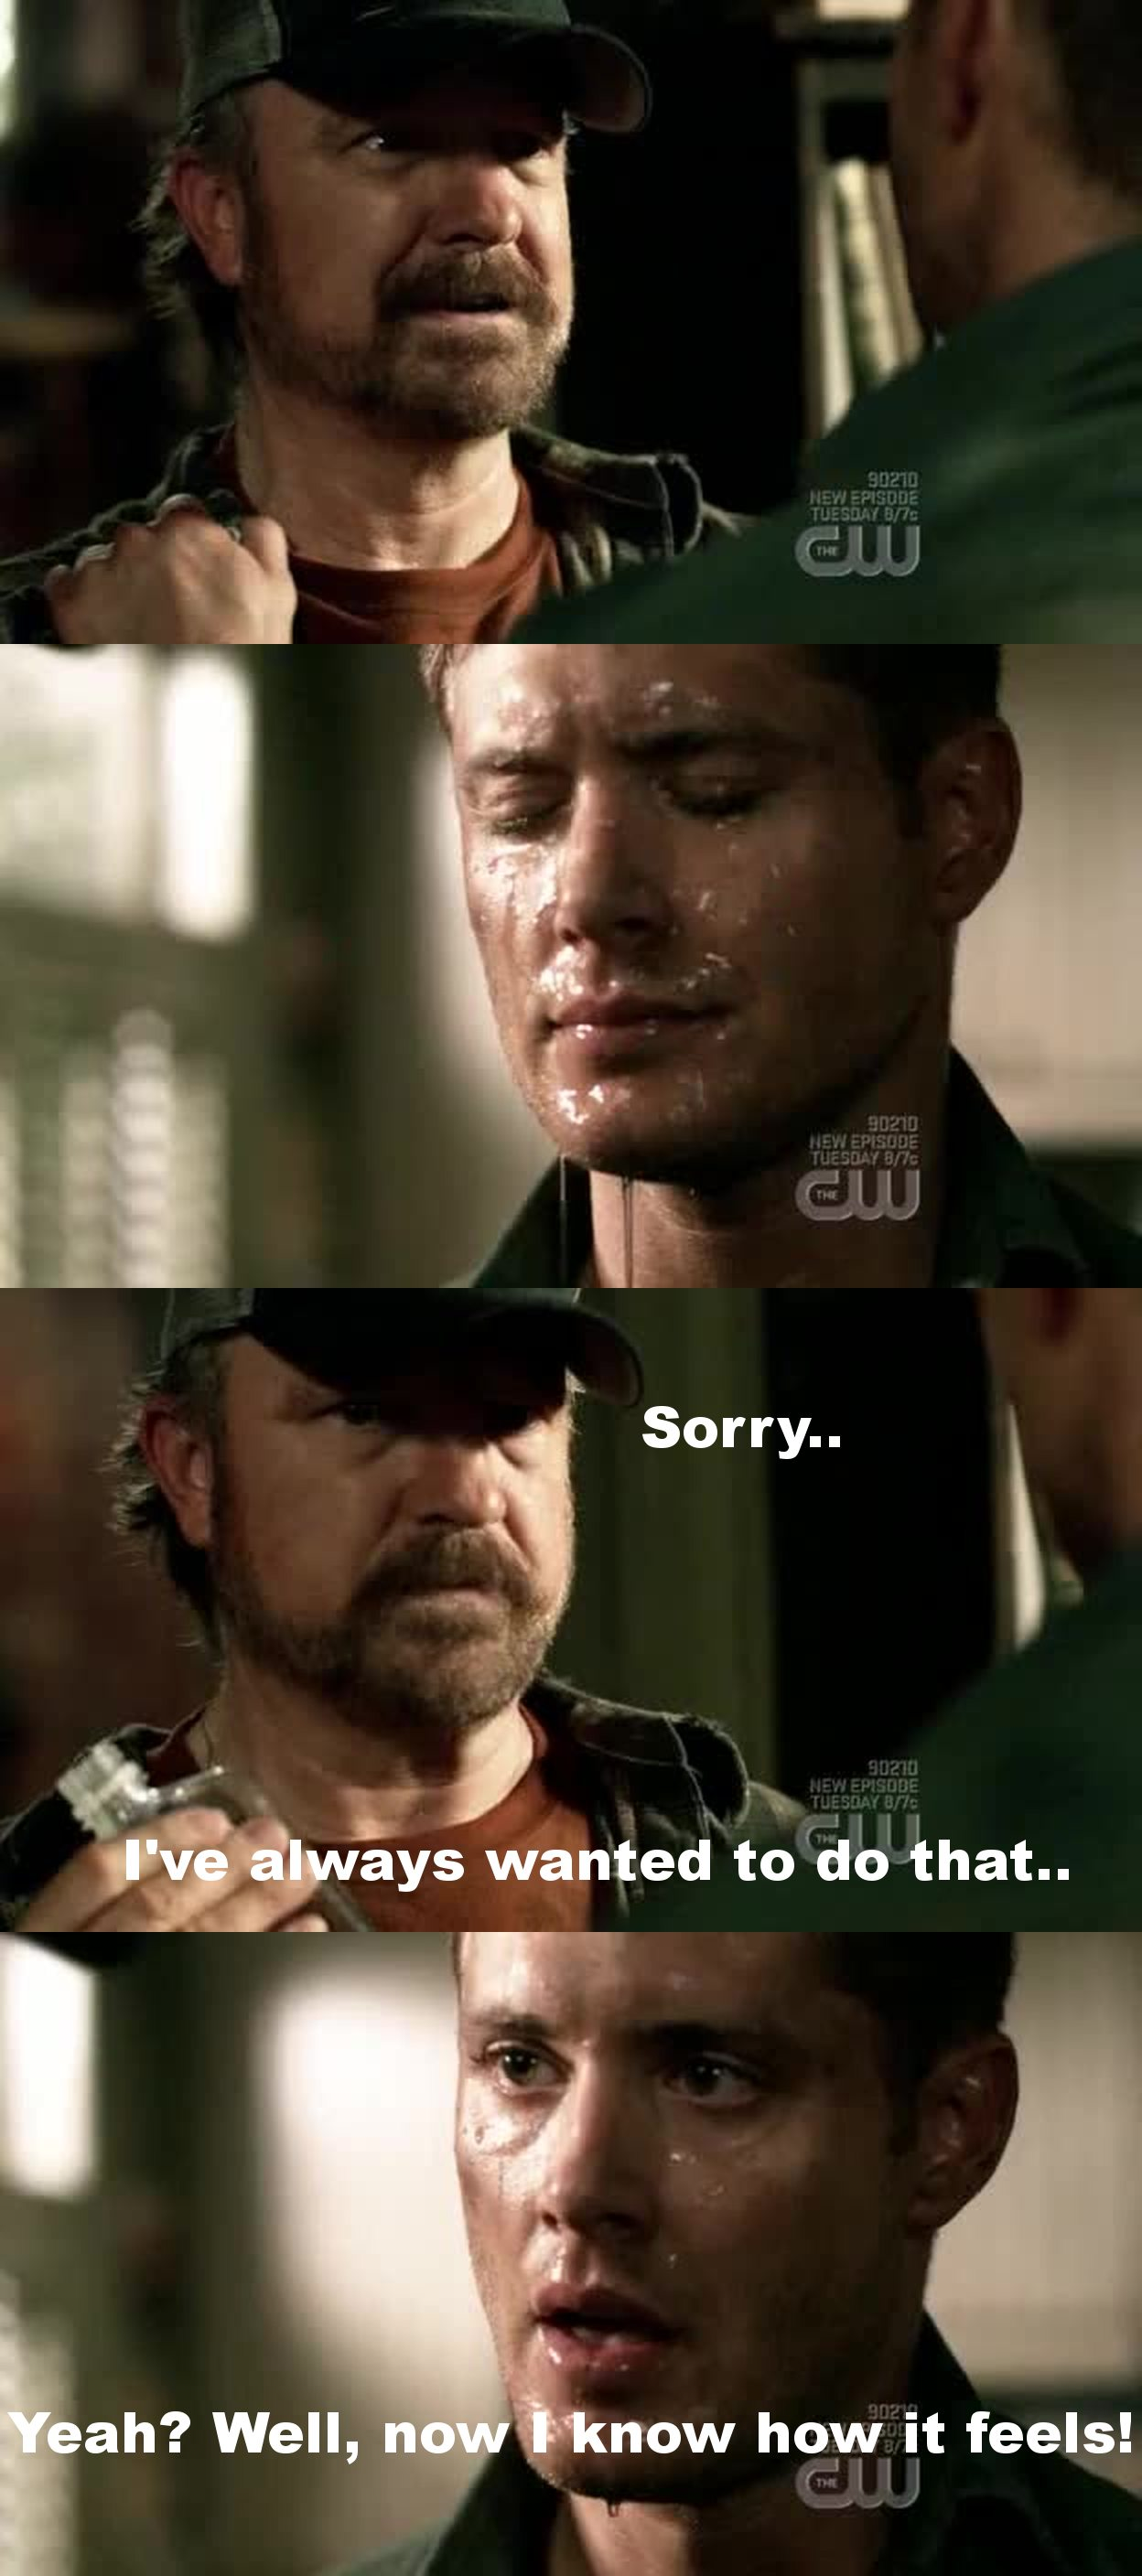 Best moment: Holy water scene with Bobby  Best quote: Dean - 'And what visage are you now, huh? What, holy tax accountant?'  ^_^